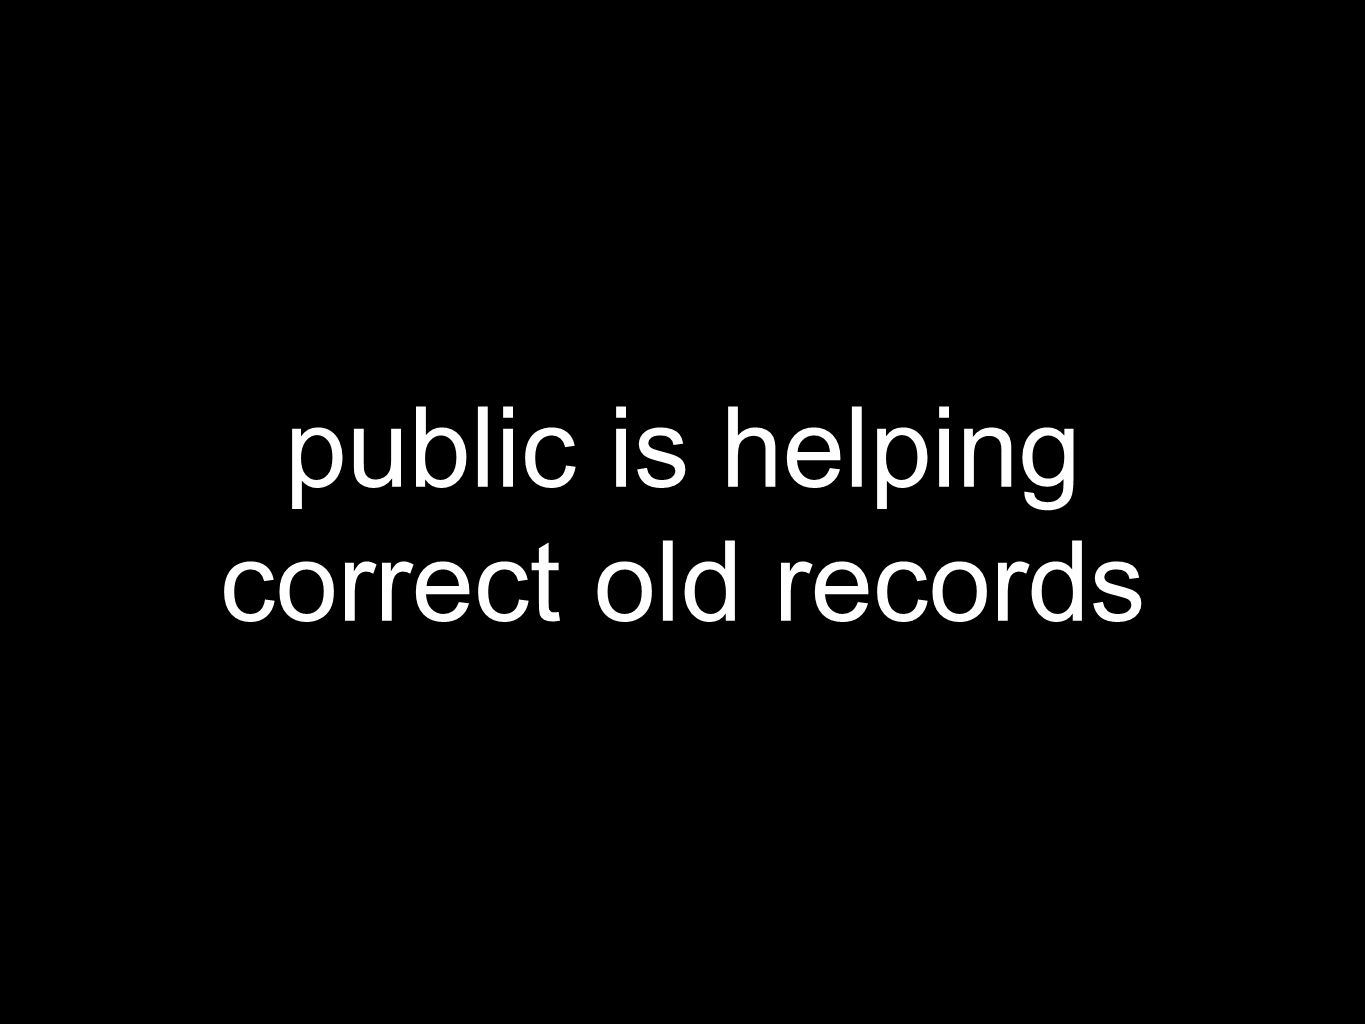 public is helping correct old records